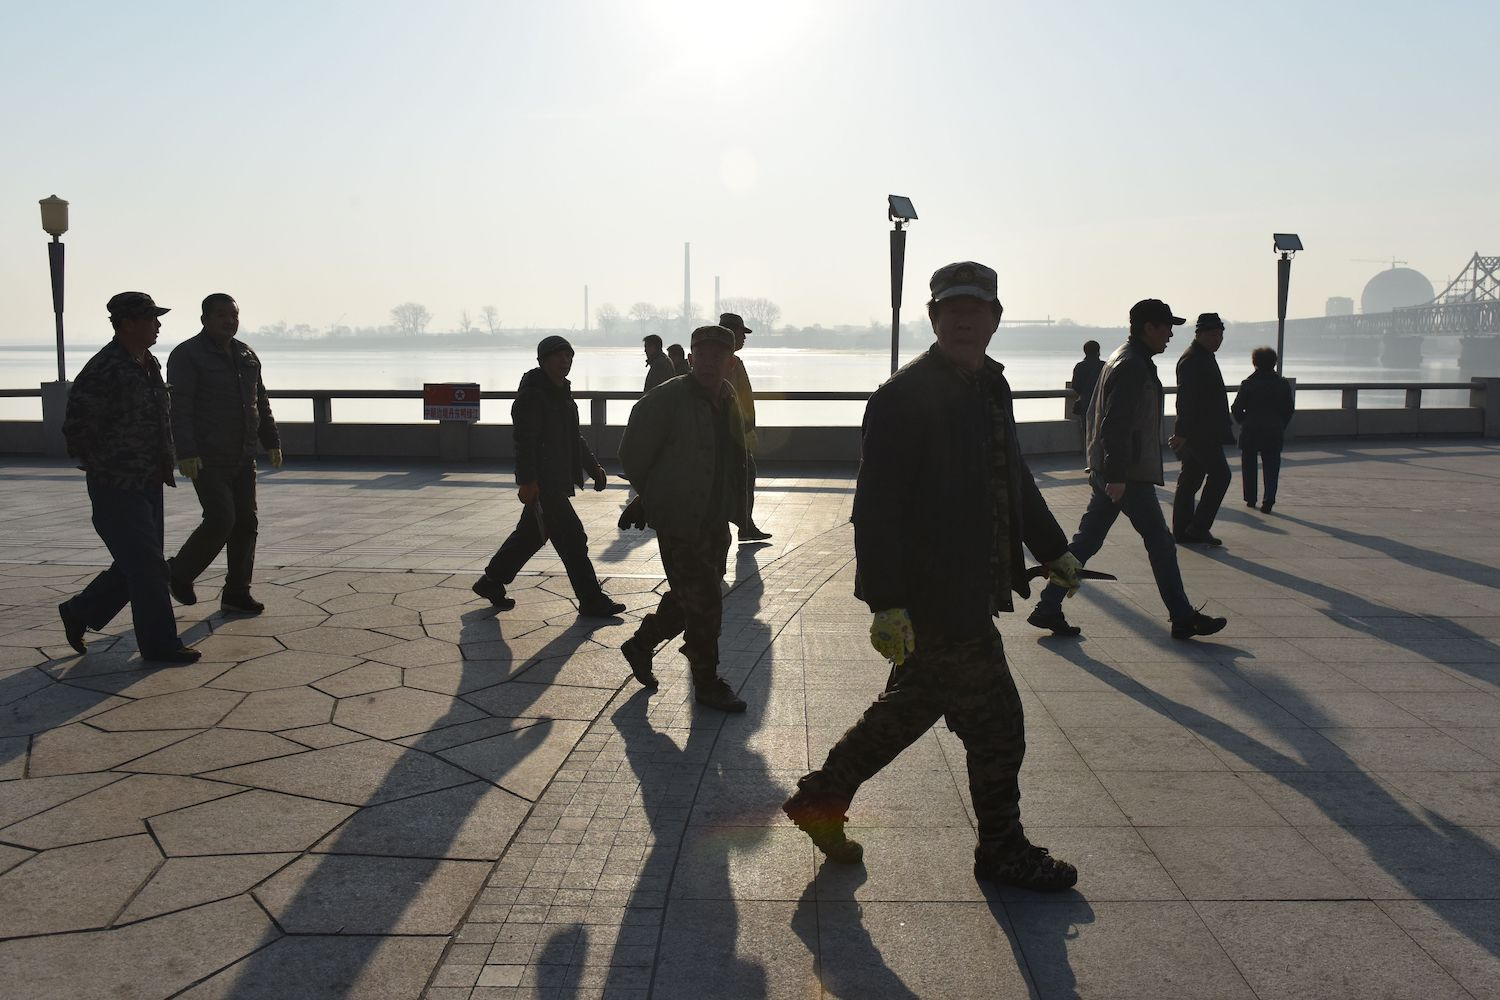 Workers walk on the waterfront in Dandong, China, with the North Korean city of Sinuiju in the background, on Feb. 23, 2019.